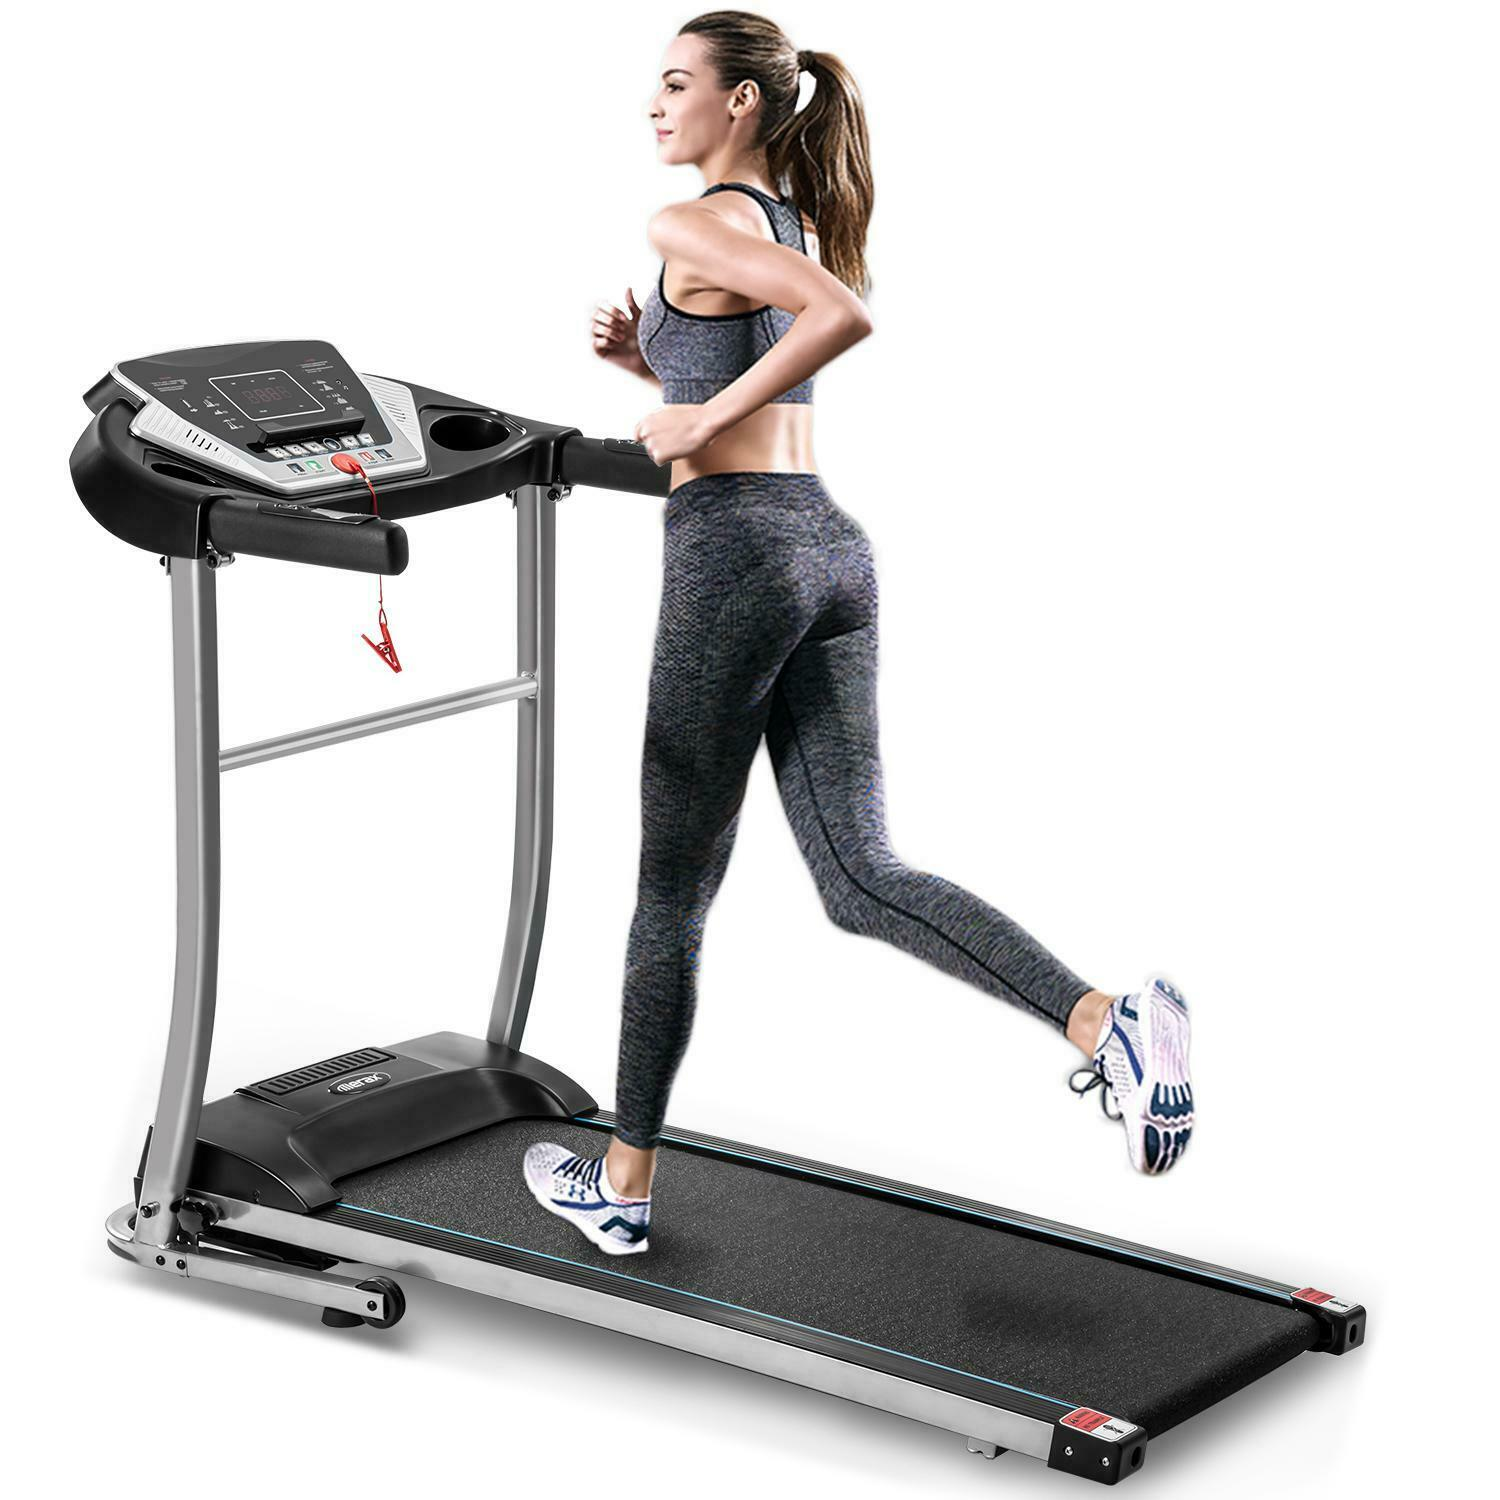 1.5 HP Easy Assembly Folding Electric Treadmill Motorized [Hot] Running Machine